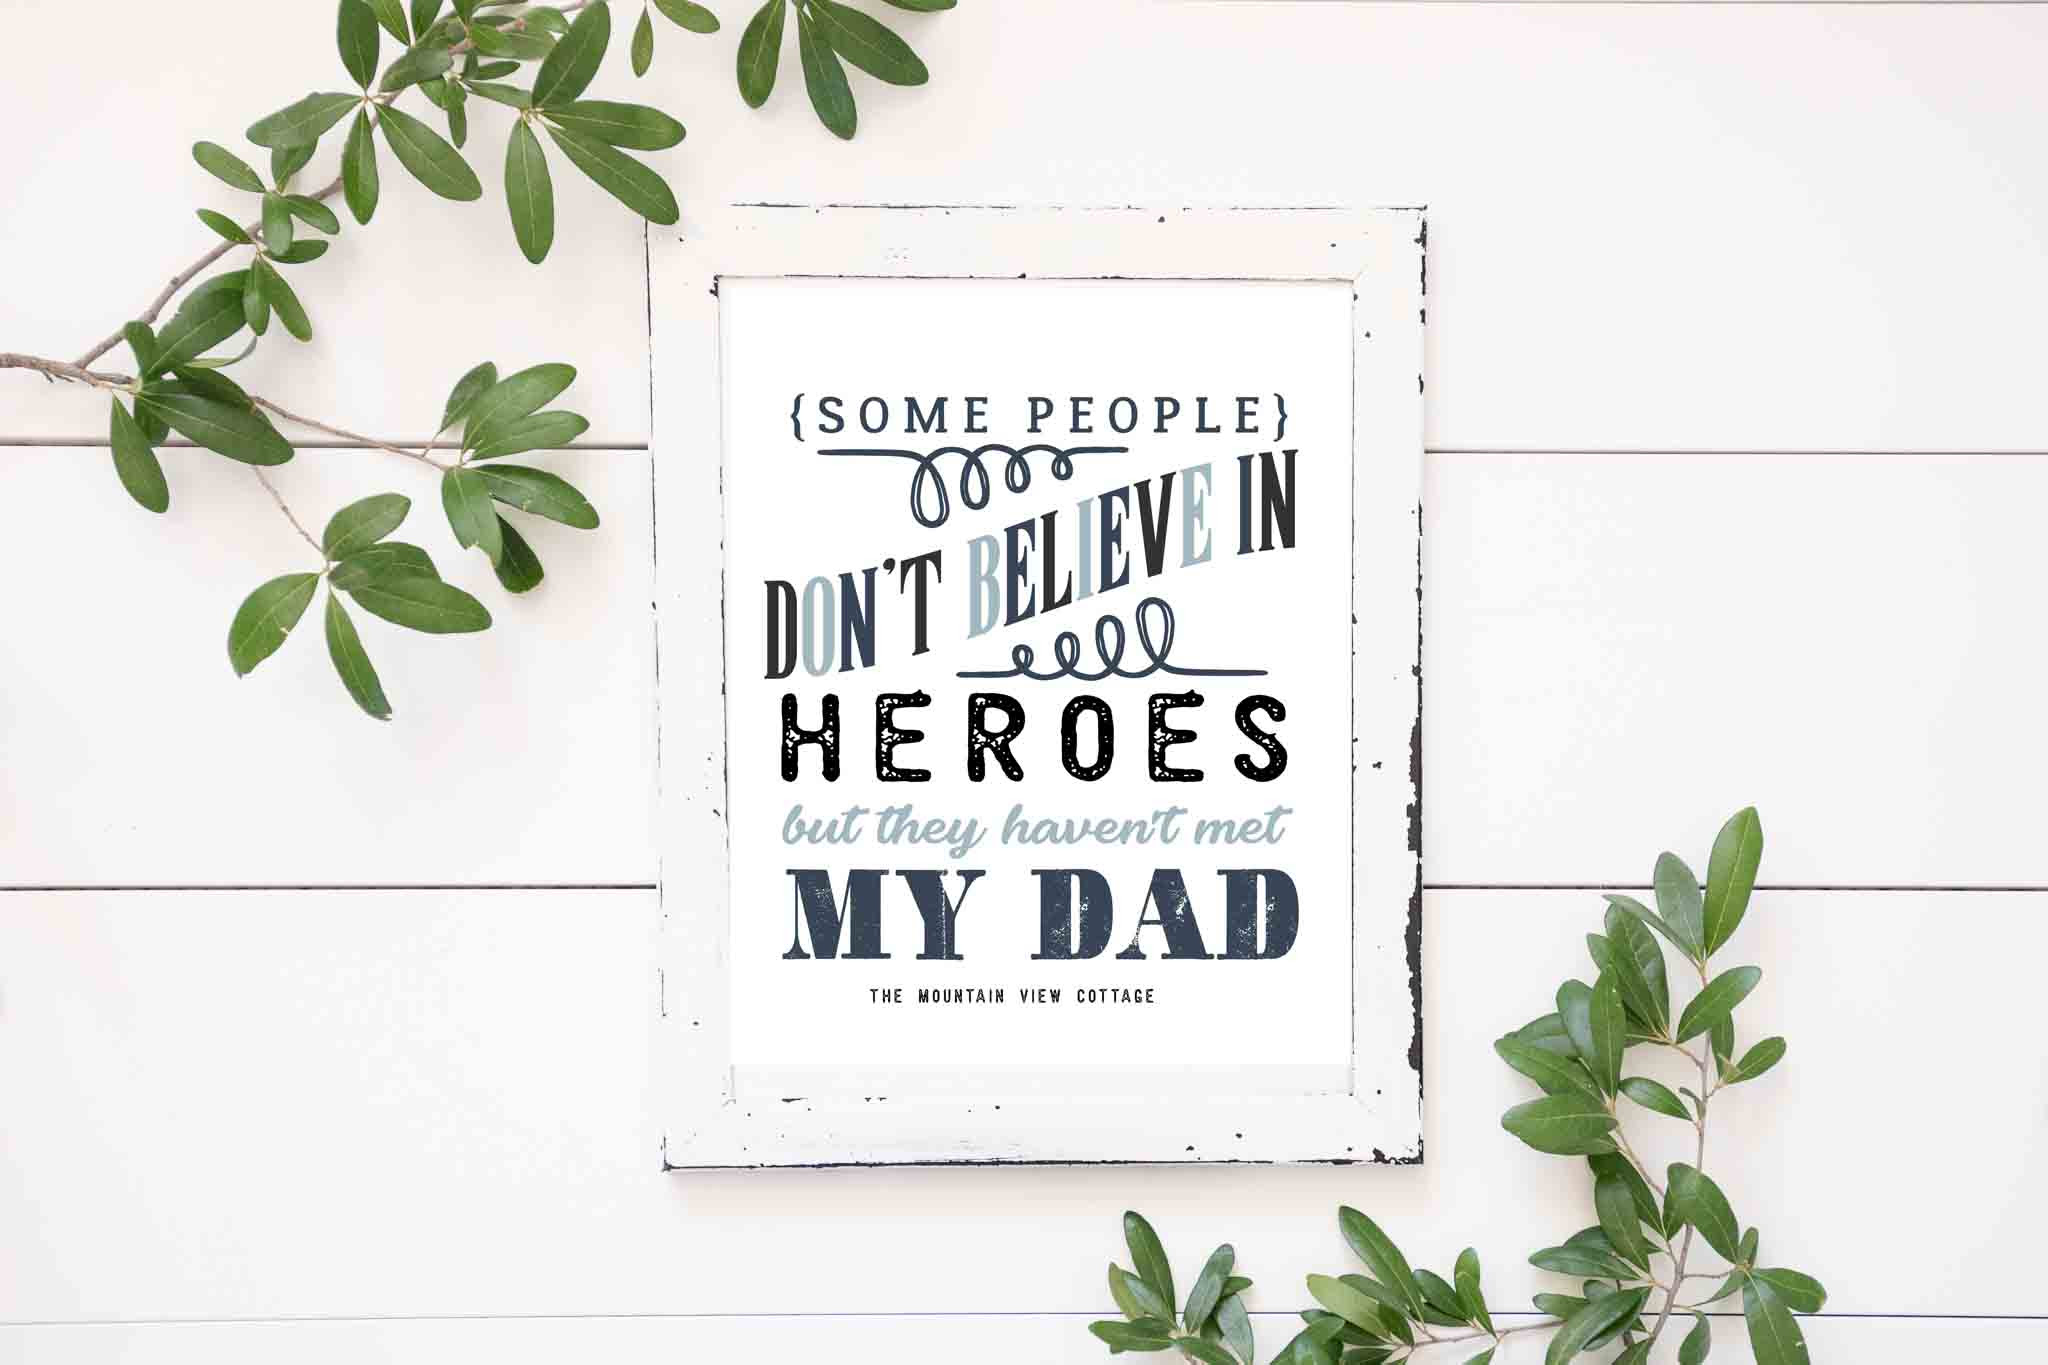 25 Dad Quotes To Inspire The Mountain View Cottage